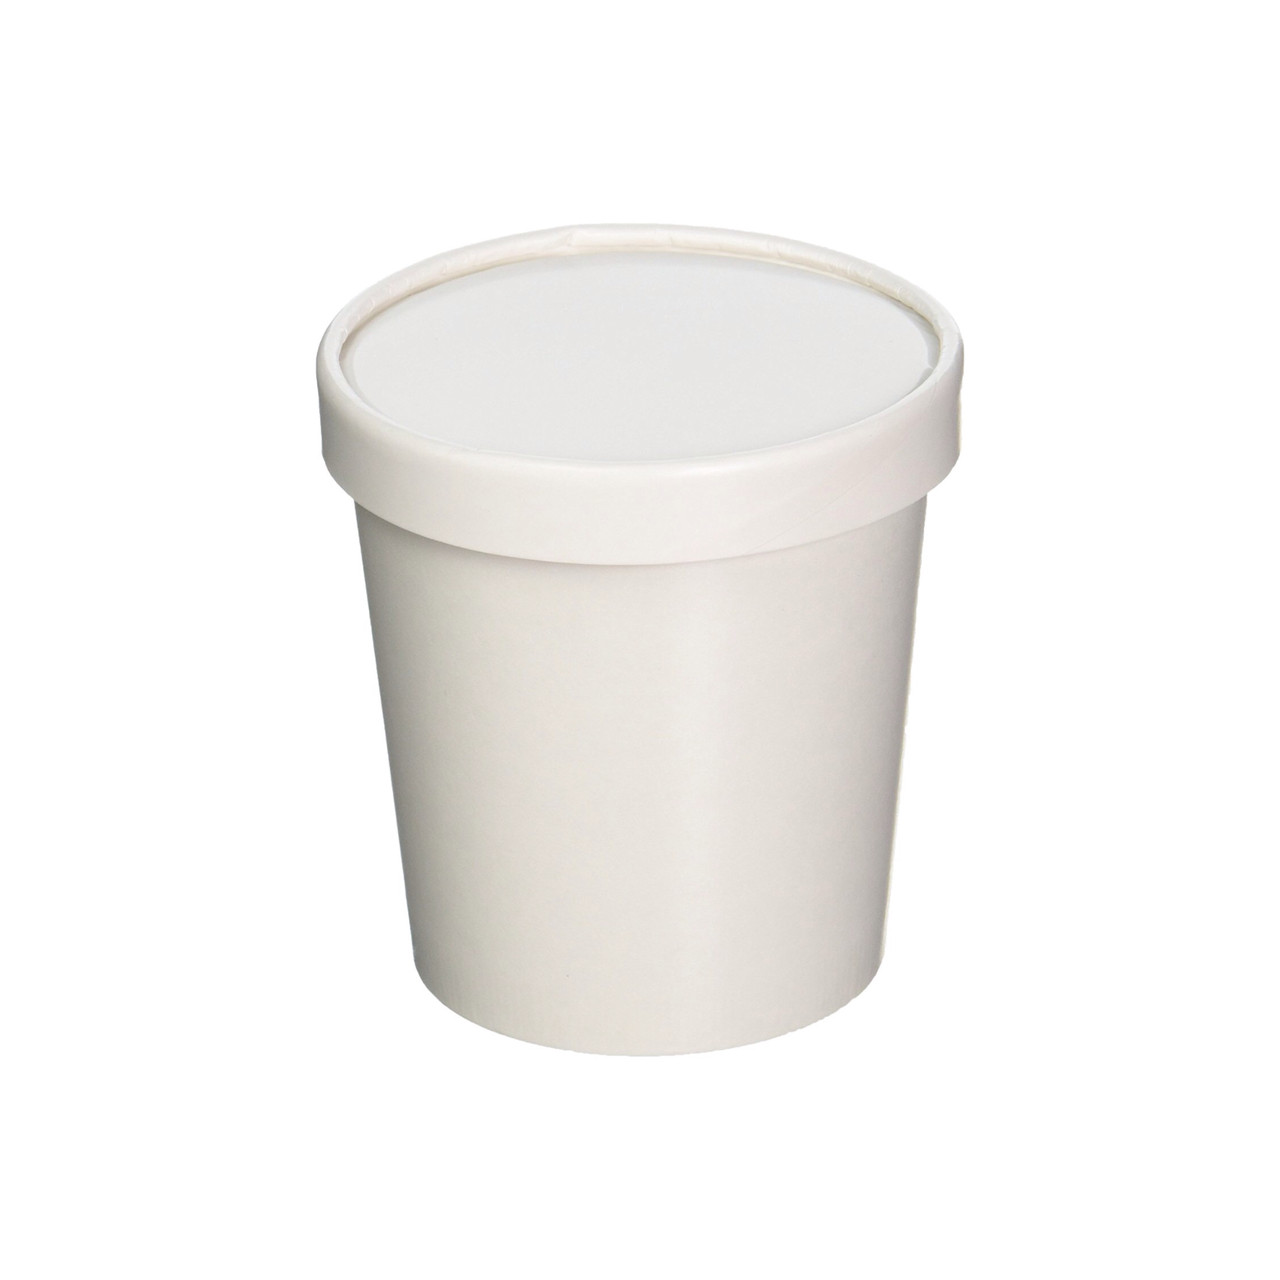 16oz White Paper Ice Cream Pint Container w Lid 250ct CLEARANCE